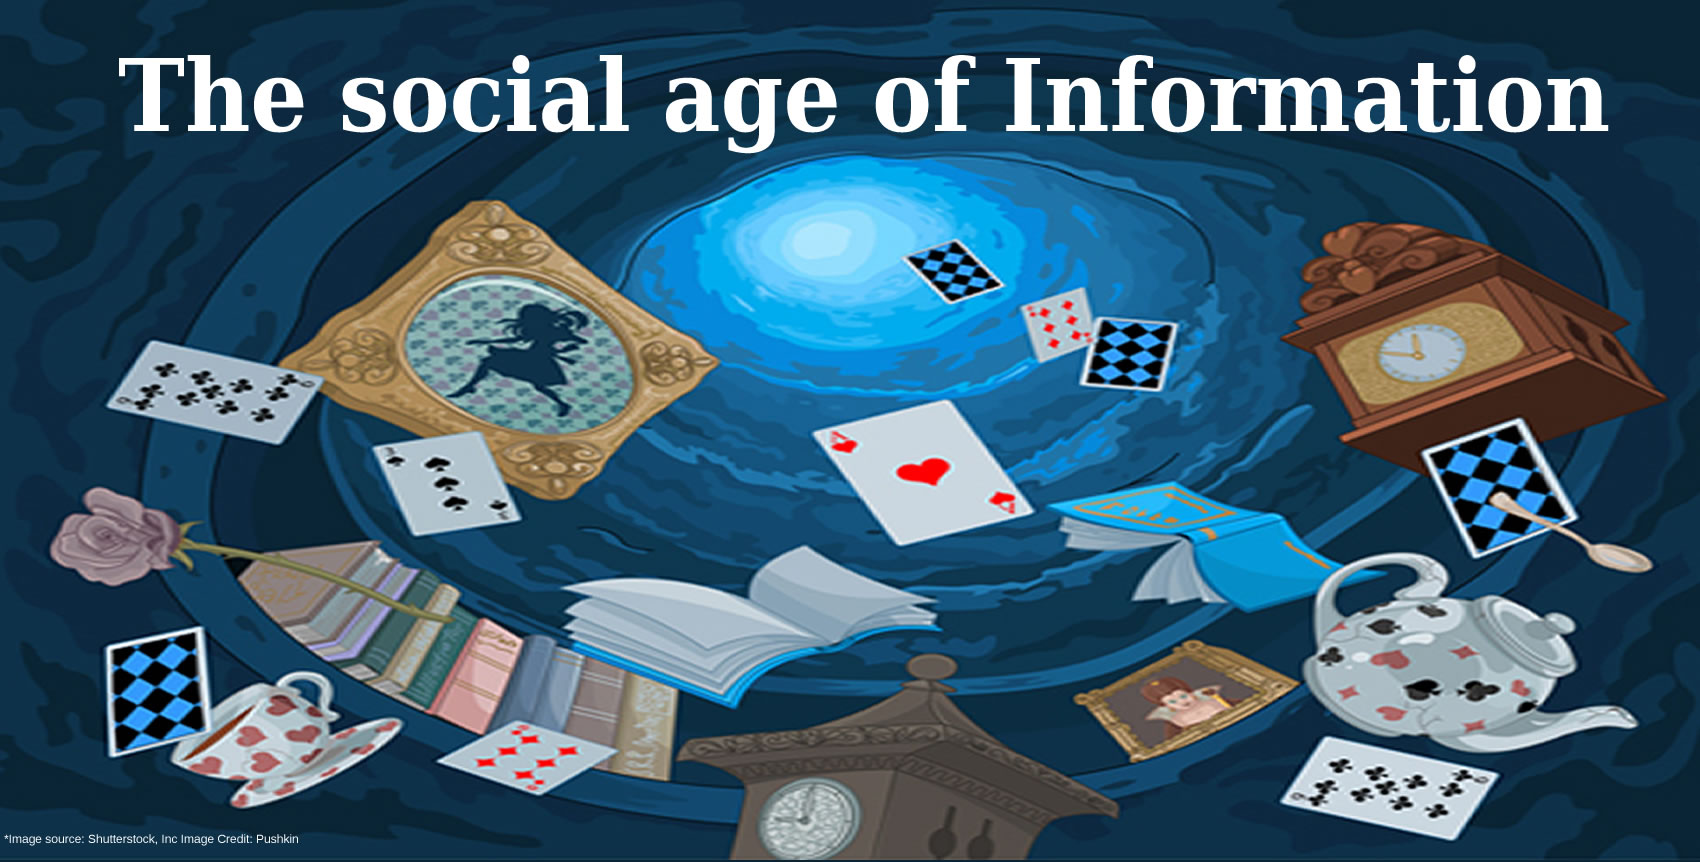 The social age of Information - it is beginning to resemble a formula from a Lewis Carroll novel! *Image source: Shutterstock, Inc Image Credit: Pushkin